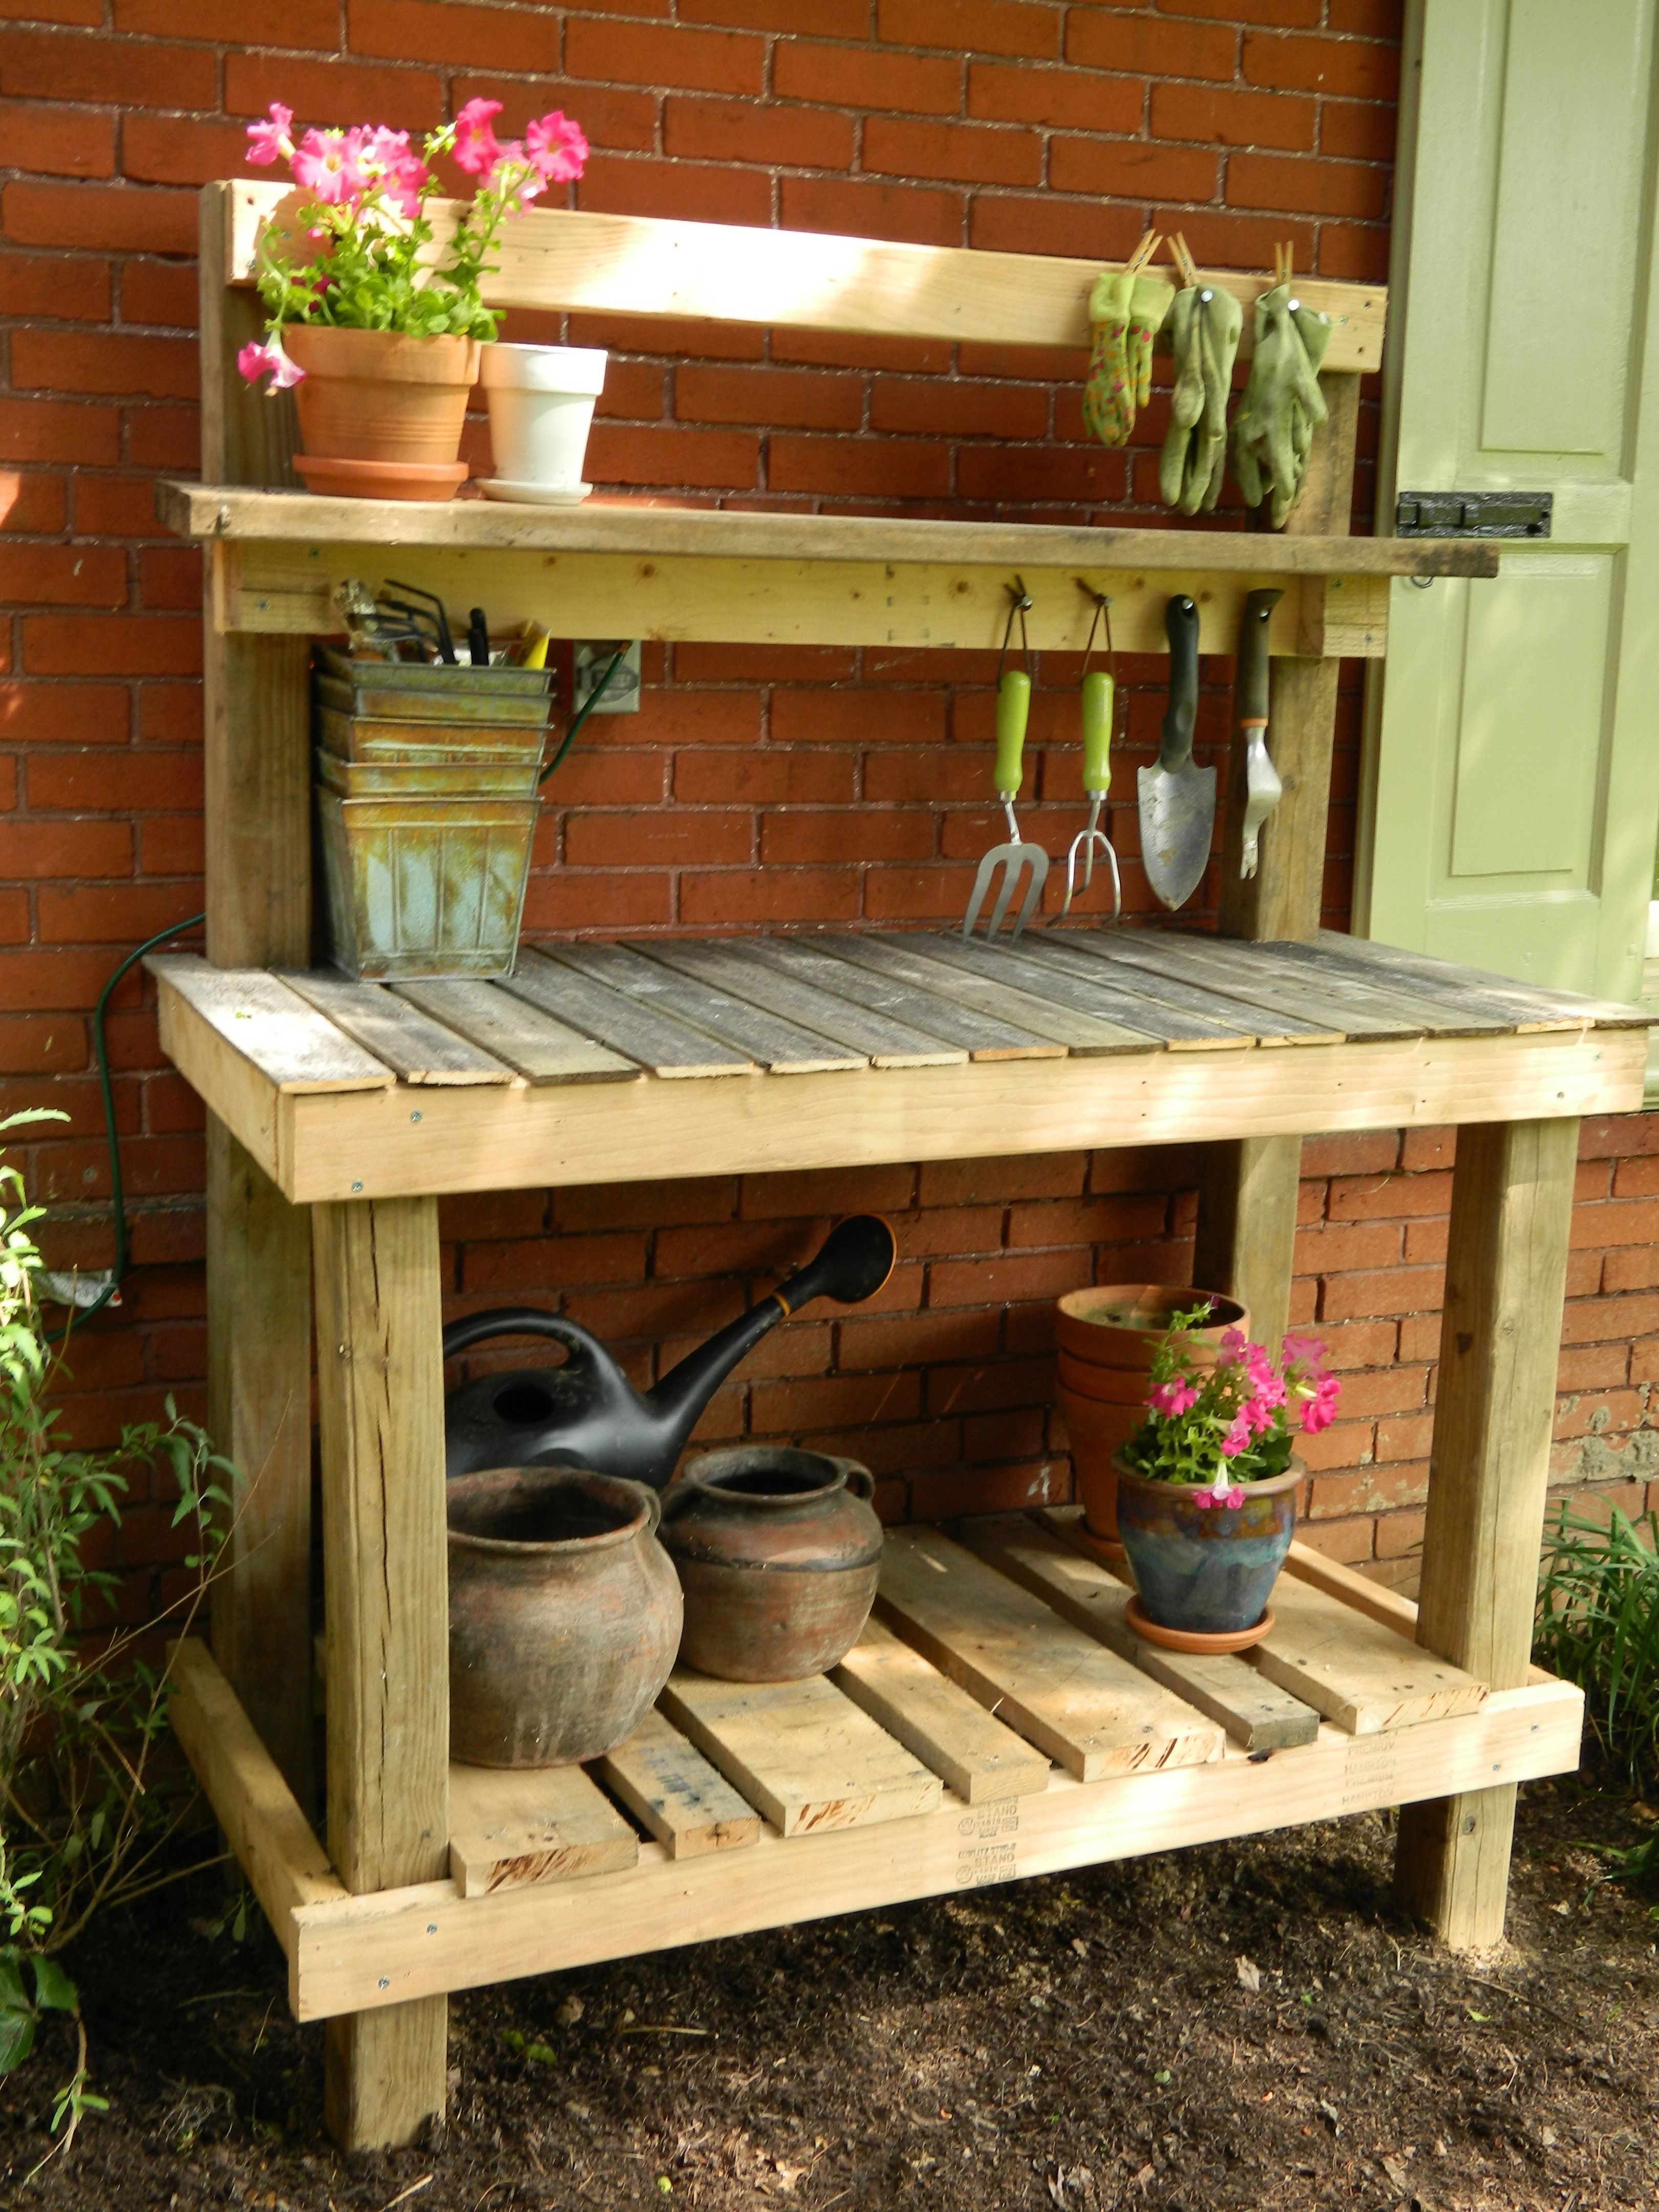 Marvelous Scrap Wood Potting Bench I Made While My Toddler Was Gmtry Best Dining Table And Chair Ideas Images Gmtryco